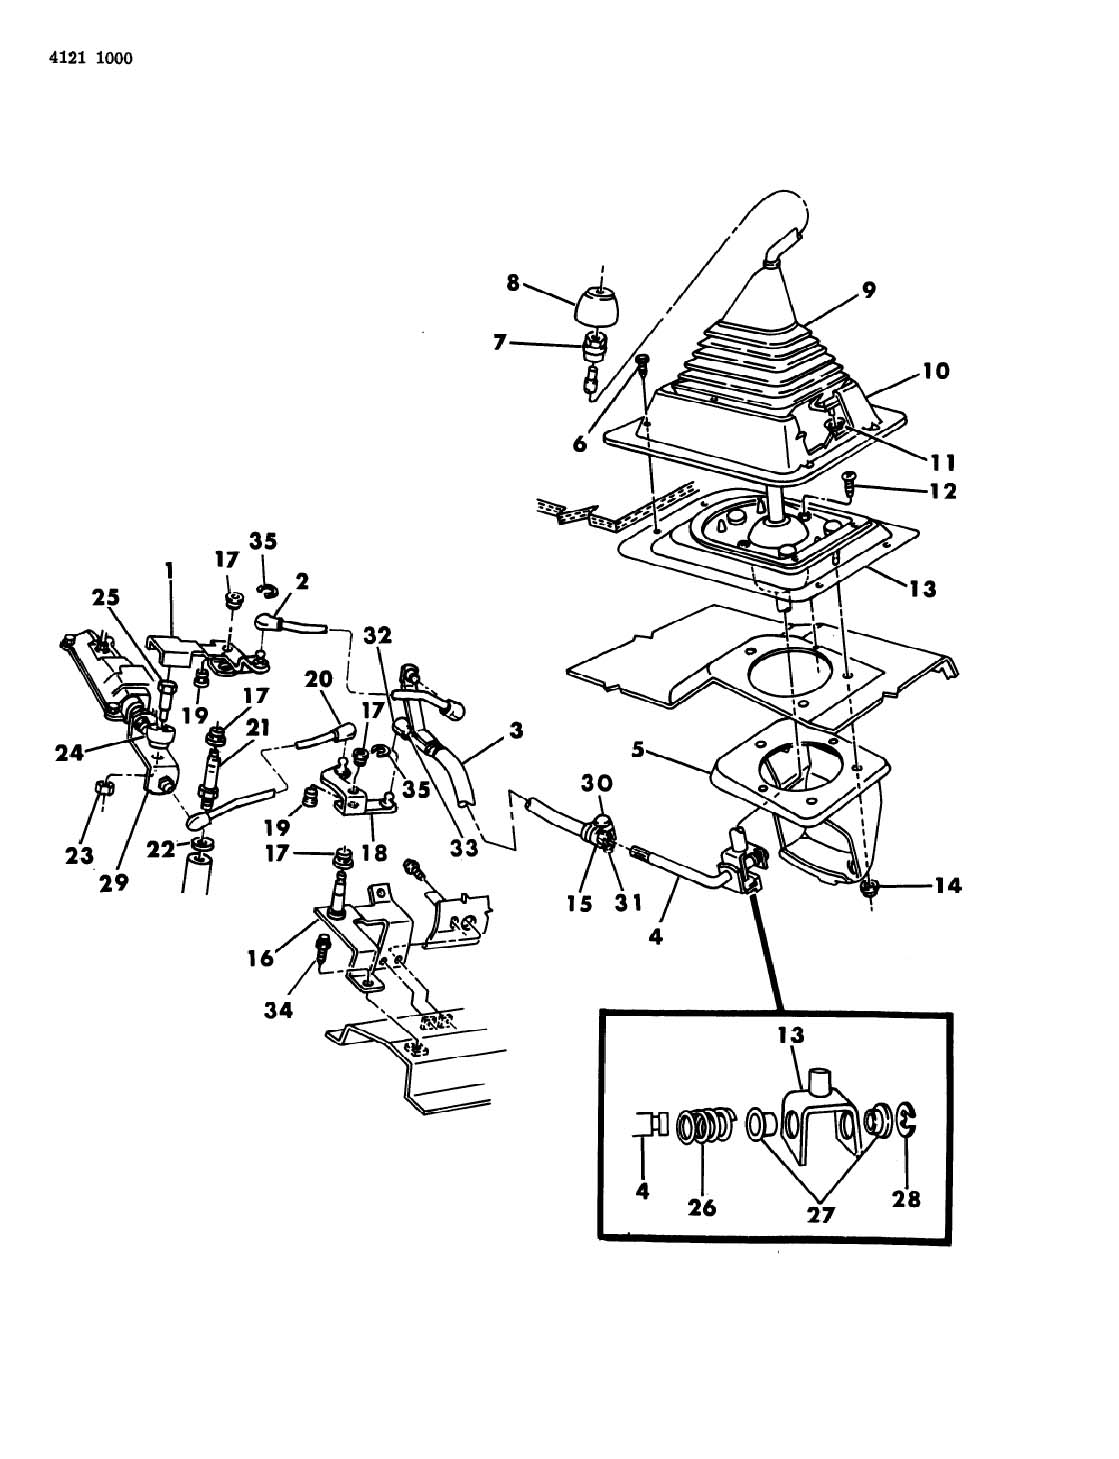 Detroit Diesel Engine Specs as well 1996 Ford F250 7 3 Wiring Diagrams together with Isb Cummins Wiring Diagram furthermore 1995 Land Rover Discovery Stereo Wiring Diagram additionally Detroit Diesel. on detroit diesel wiring schematics